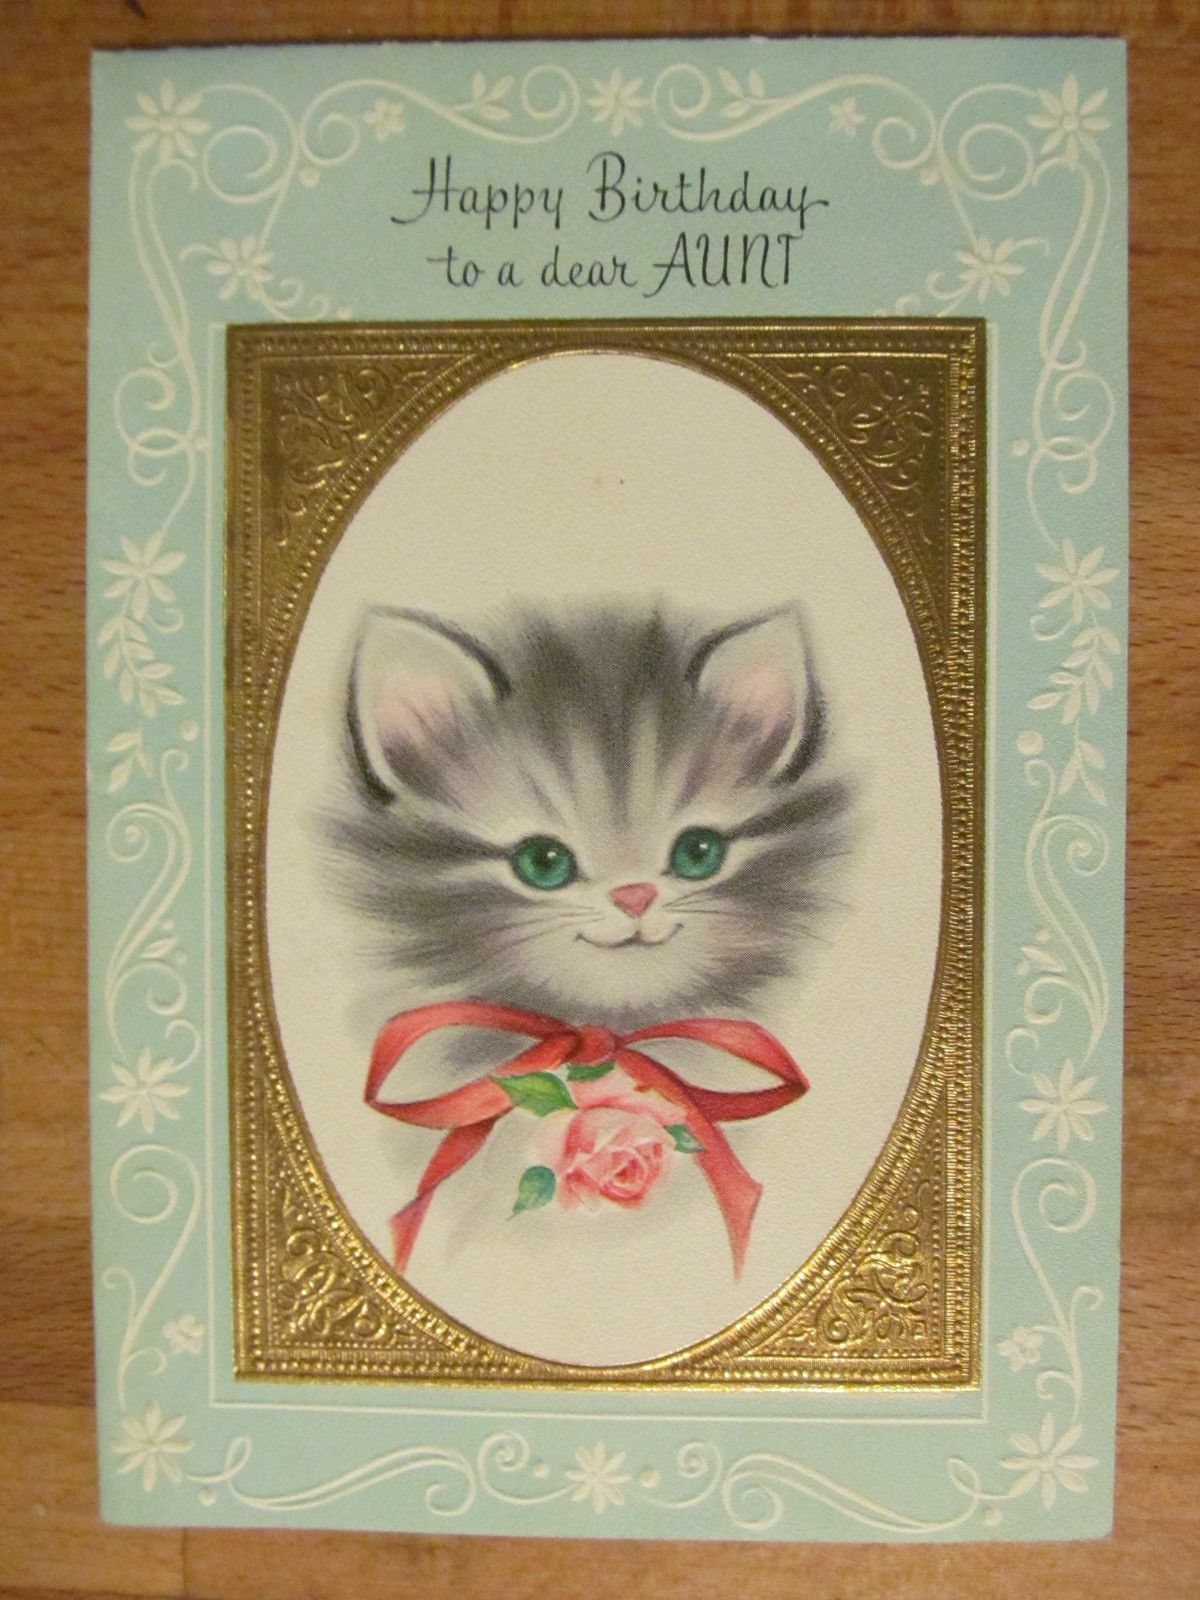 Vintage american greeting birthday card cat kitten pinterest vintage american greeting birthday card cat kitten ebay m4hsunfo